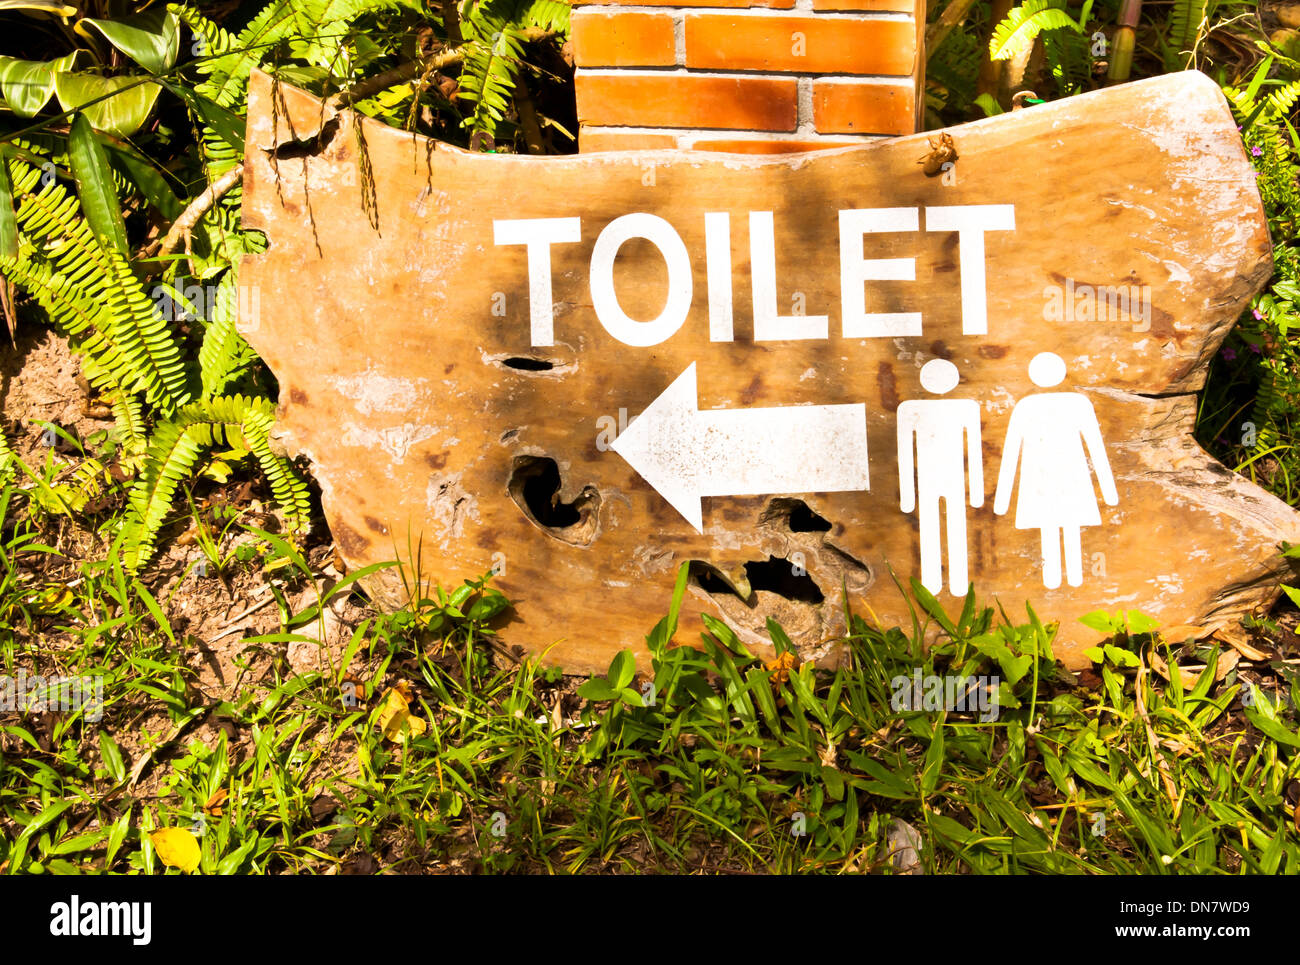 toilet signs stockfotos toilet signs bilder alamy. Black Bedroom Furniture Sets. Home Design Ideas